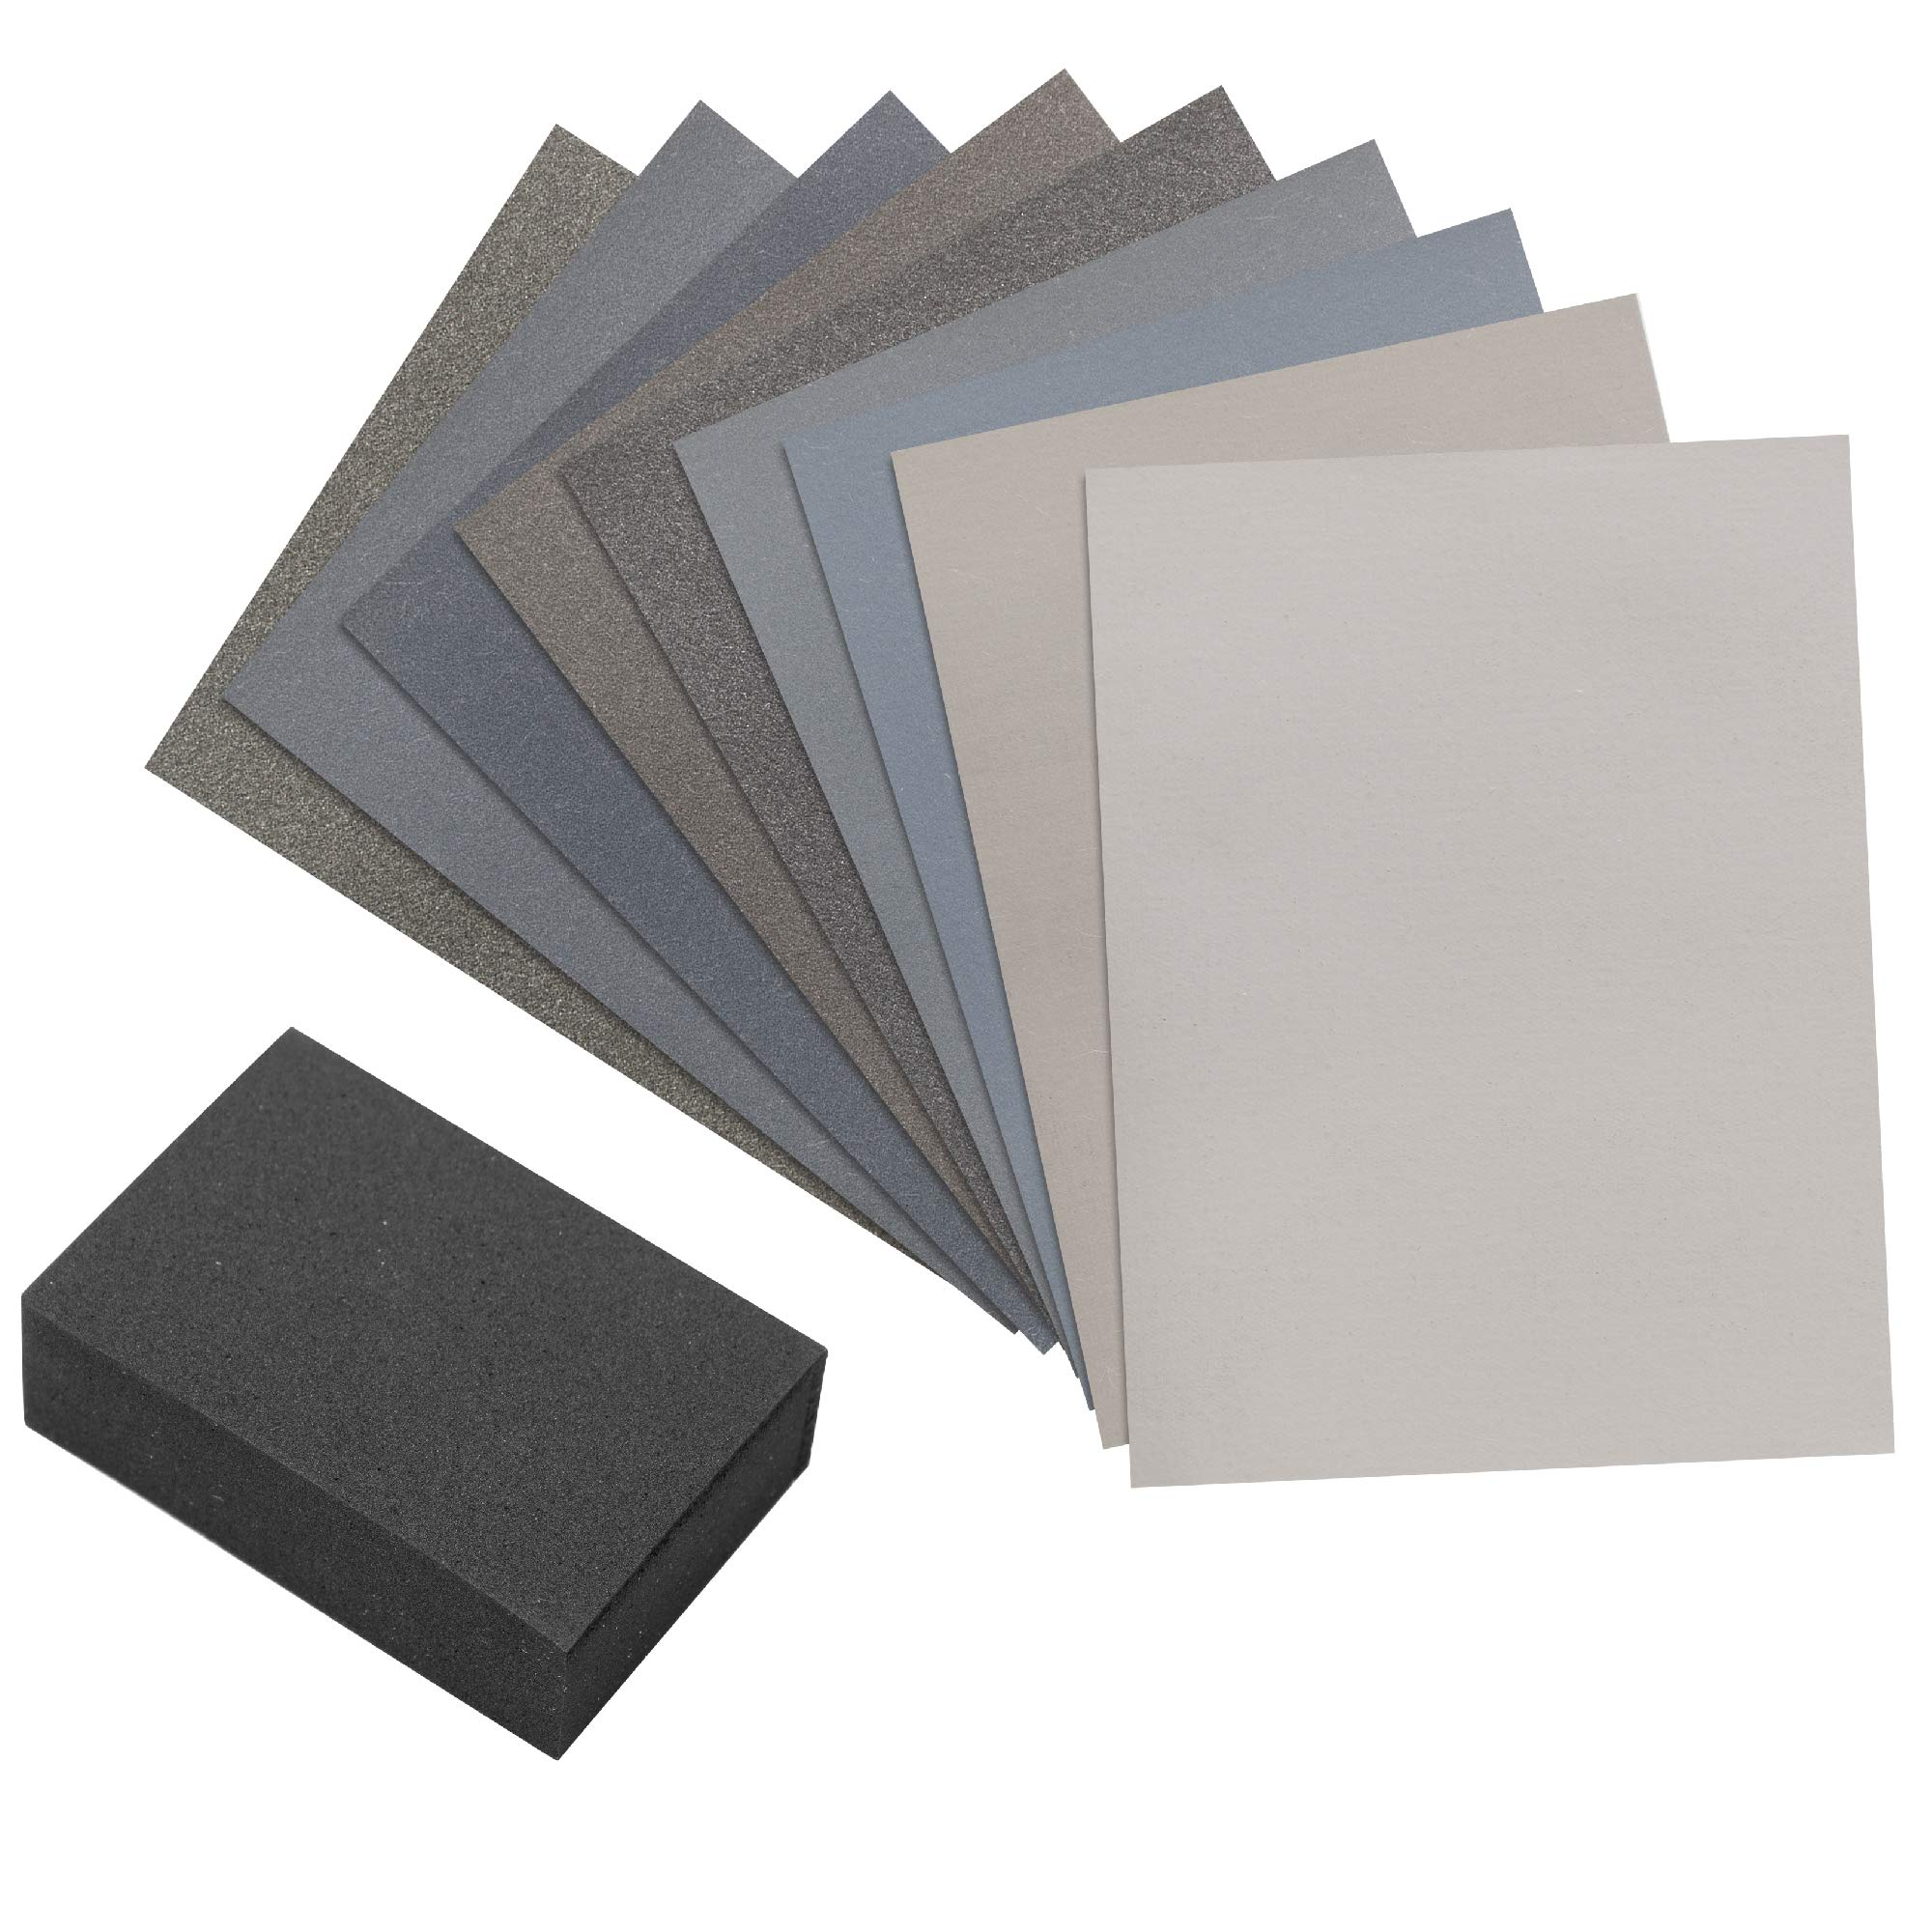 Micro Mesh 9 Sanding Sheet Introductory Woodworkers Kit with a 2 inch by 3 inch Foam Sanding Block by   Micro Mesh